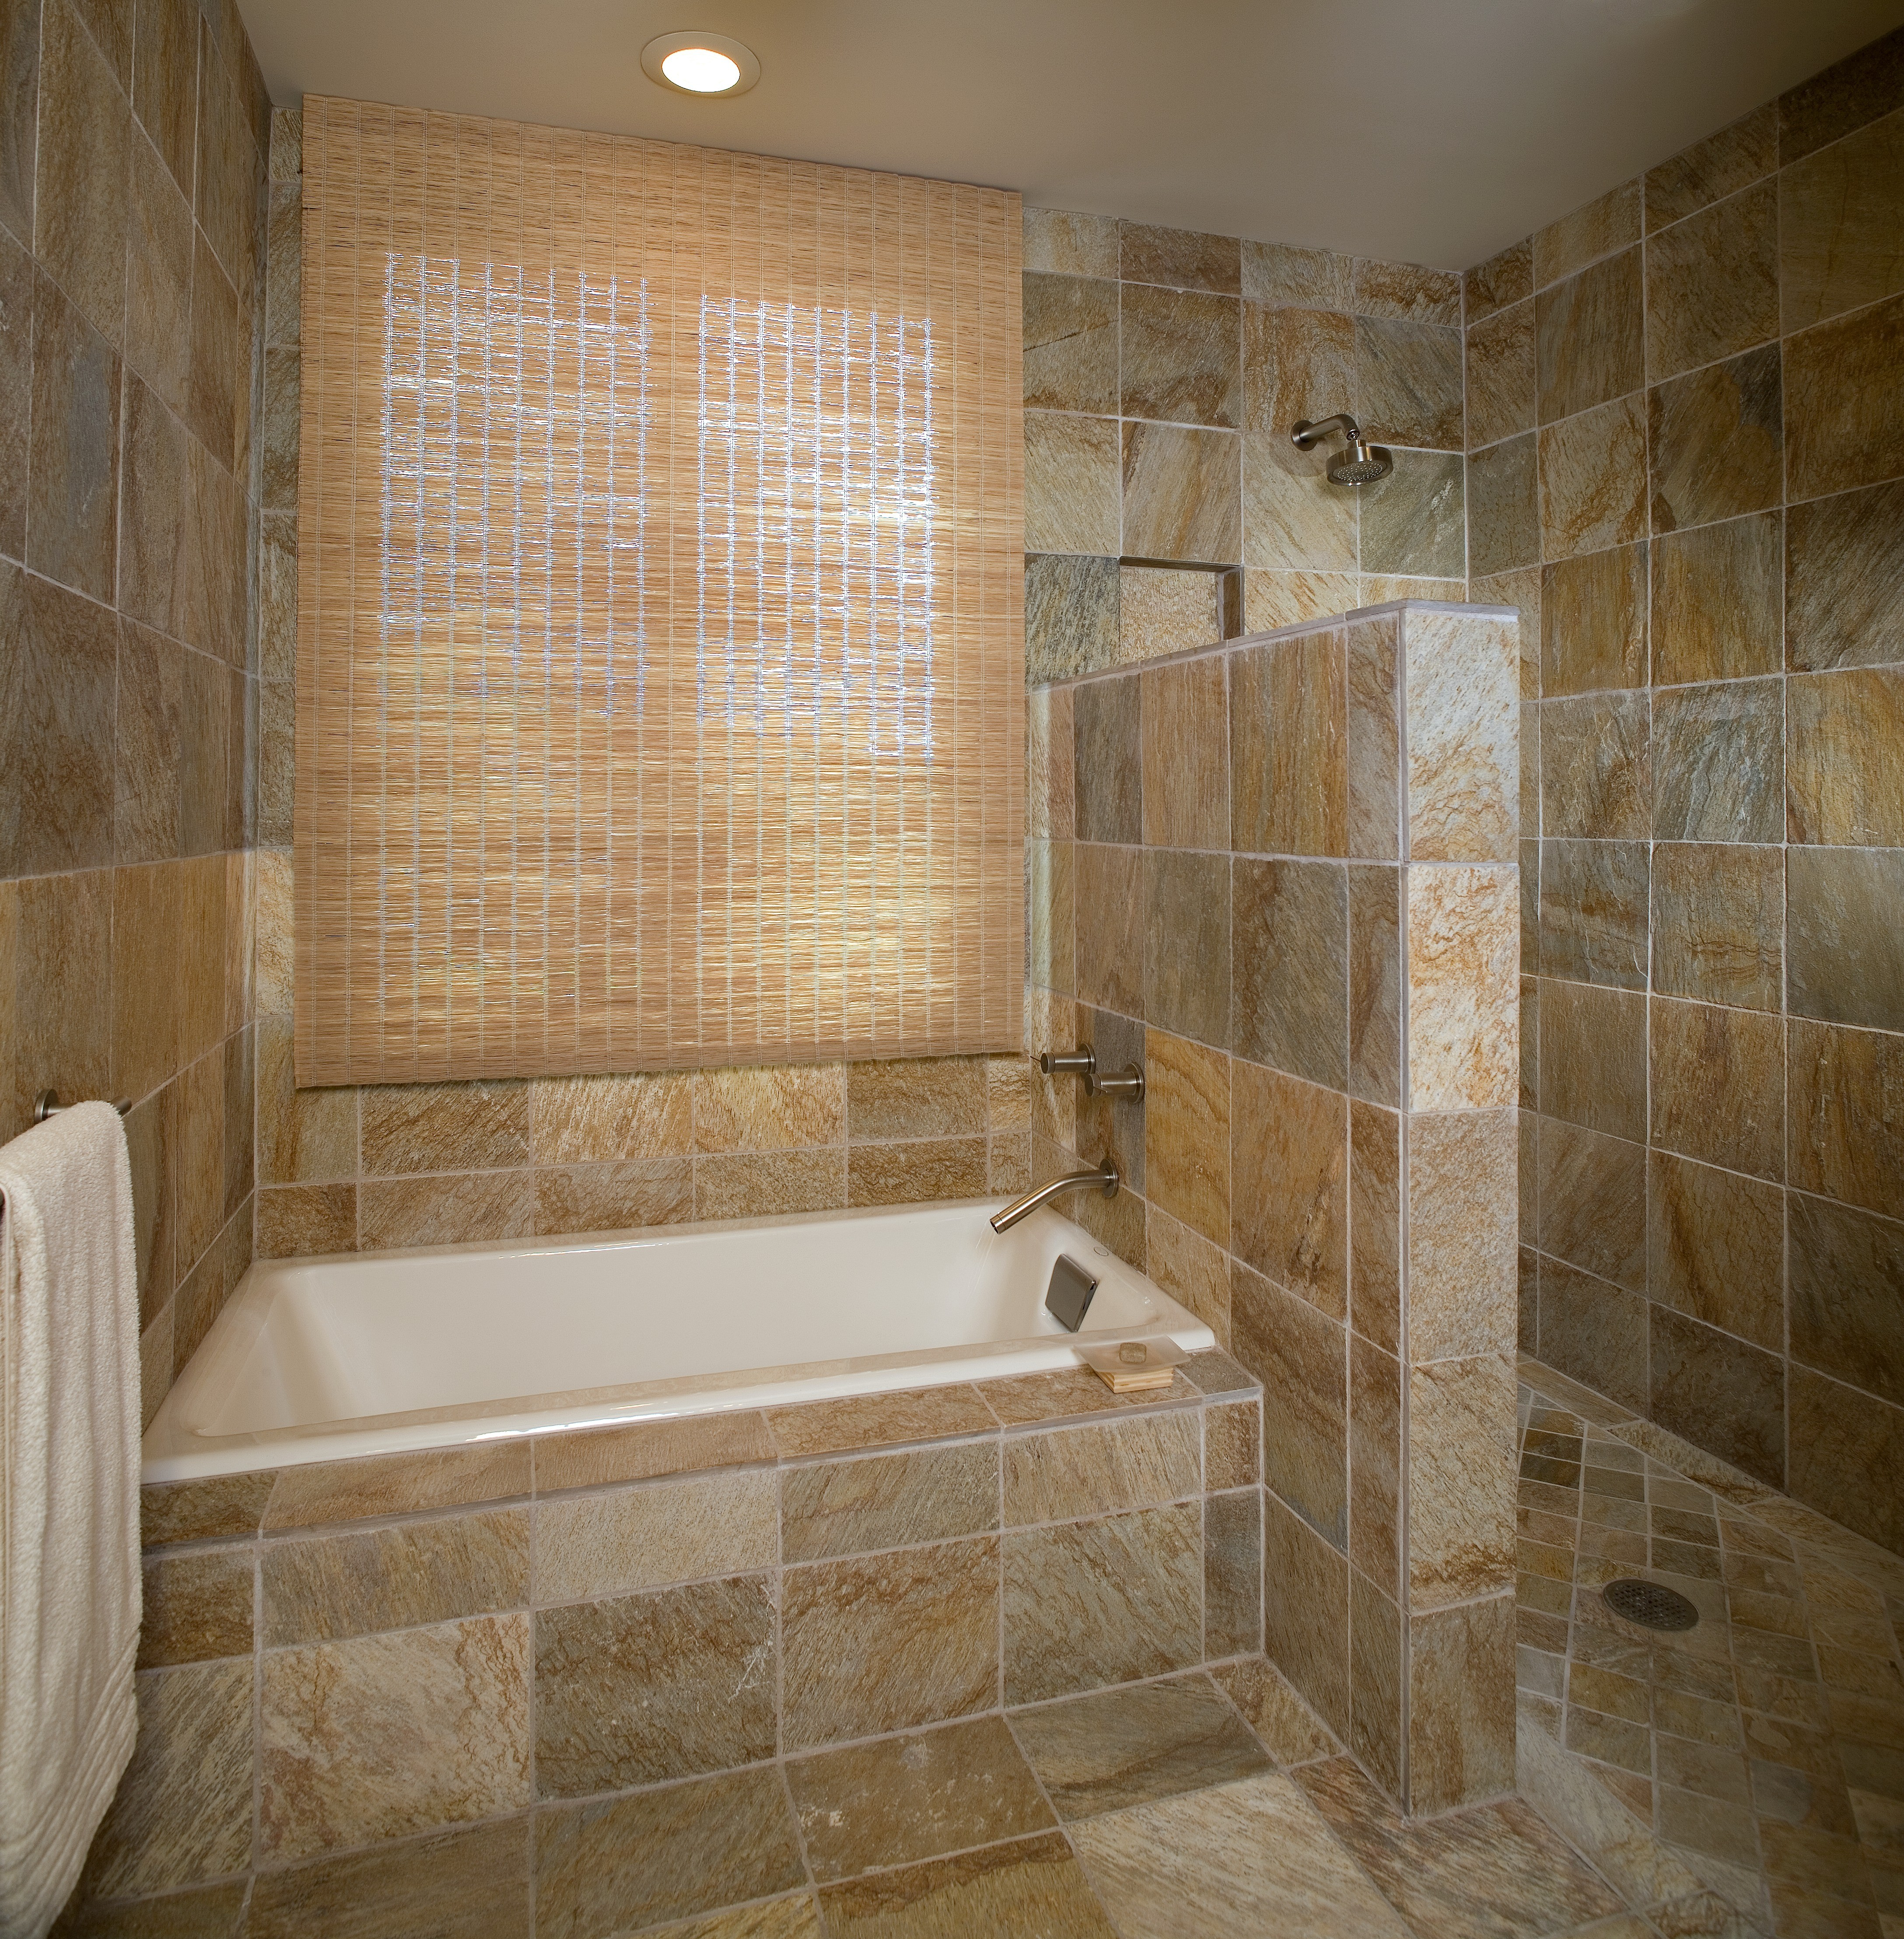 Remodel Bathroom Cost Latest where Does Your Money Go for A Bathroom Remodel Concept